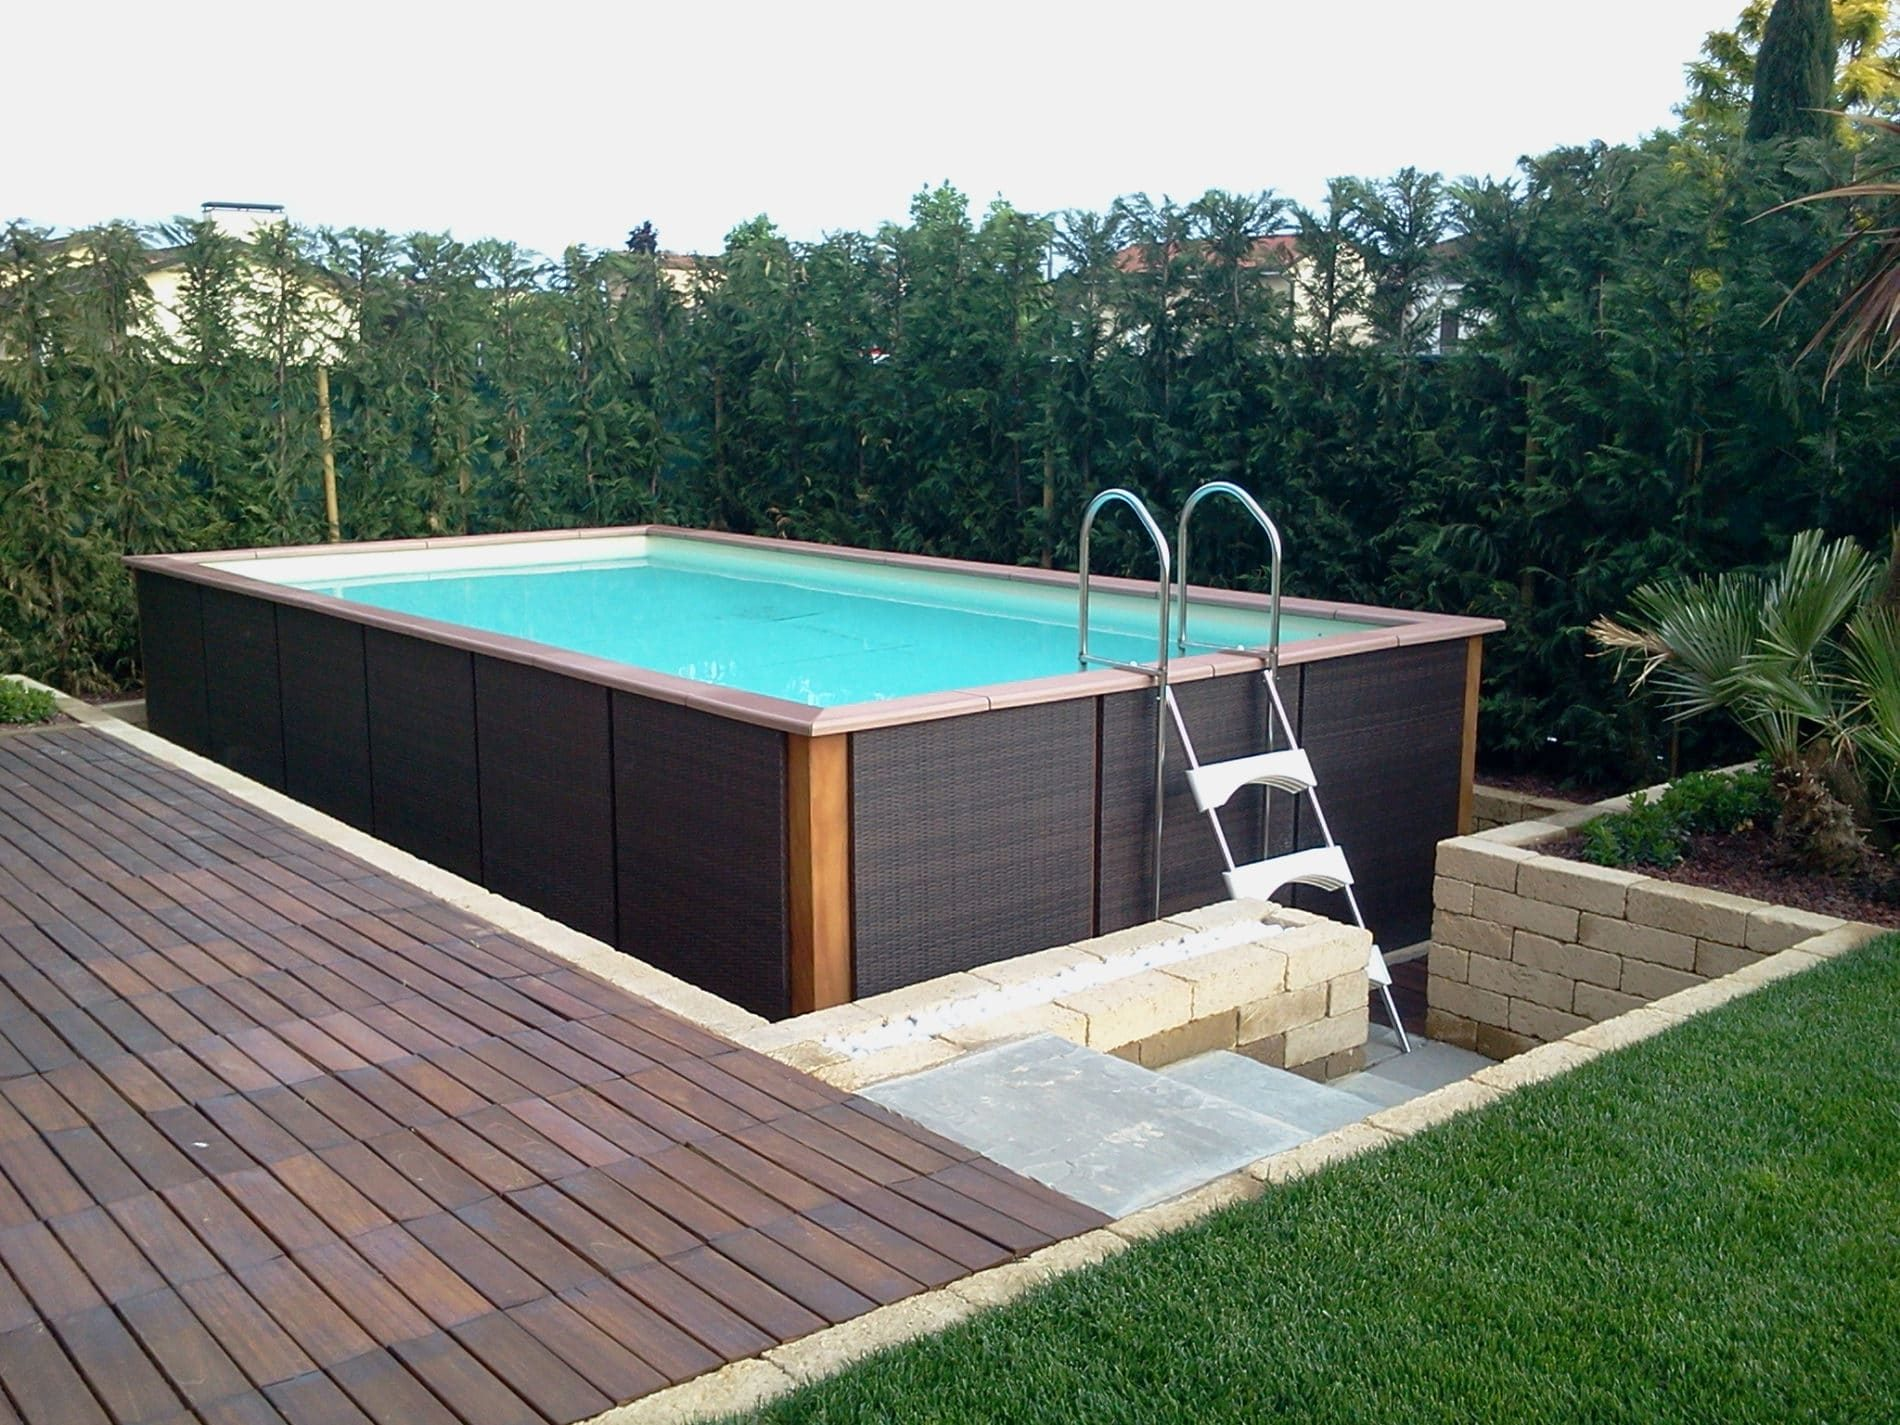 fluidra acquiert les piscines hors sol laghetto id es piscine. Black Bedroom Furniture Sets. Home Design Ideas